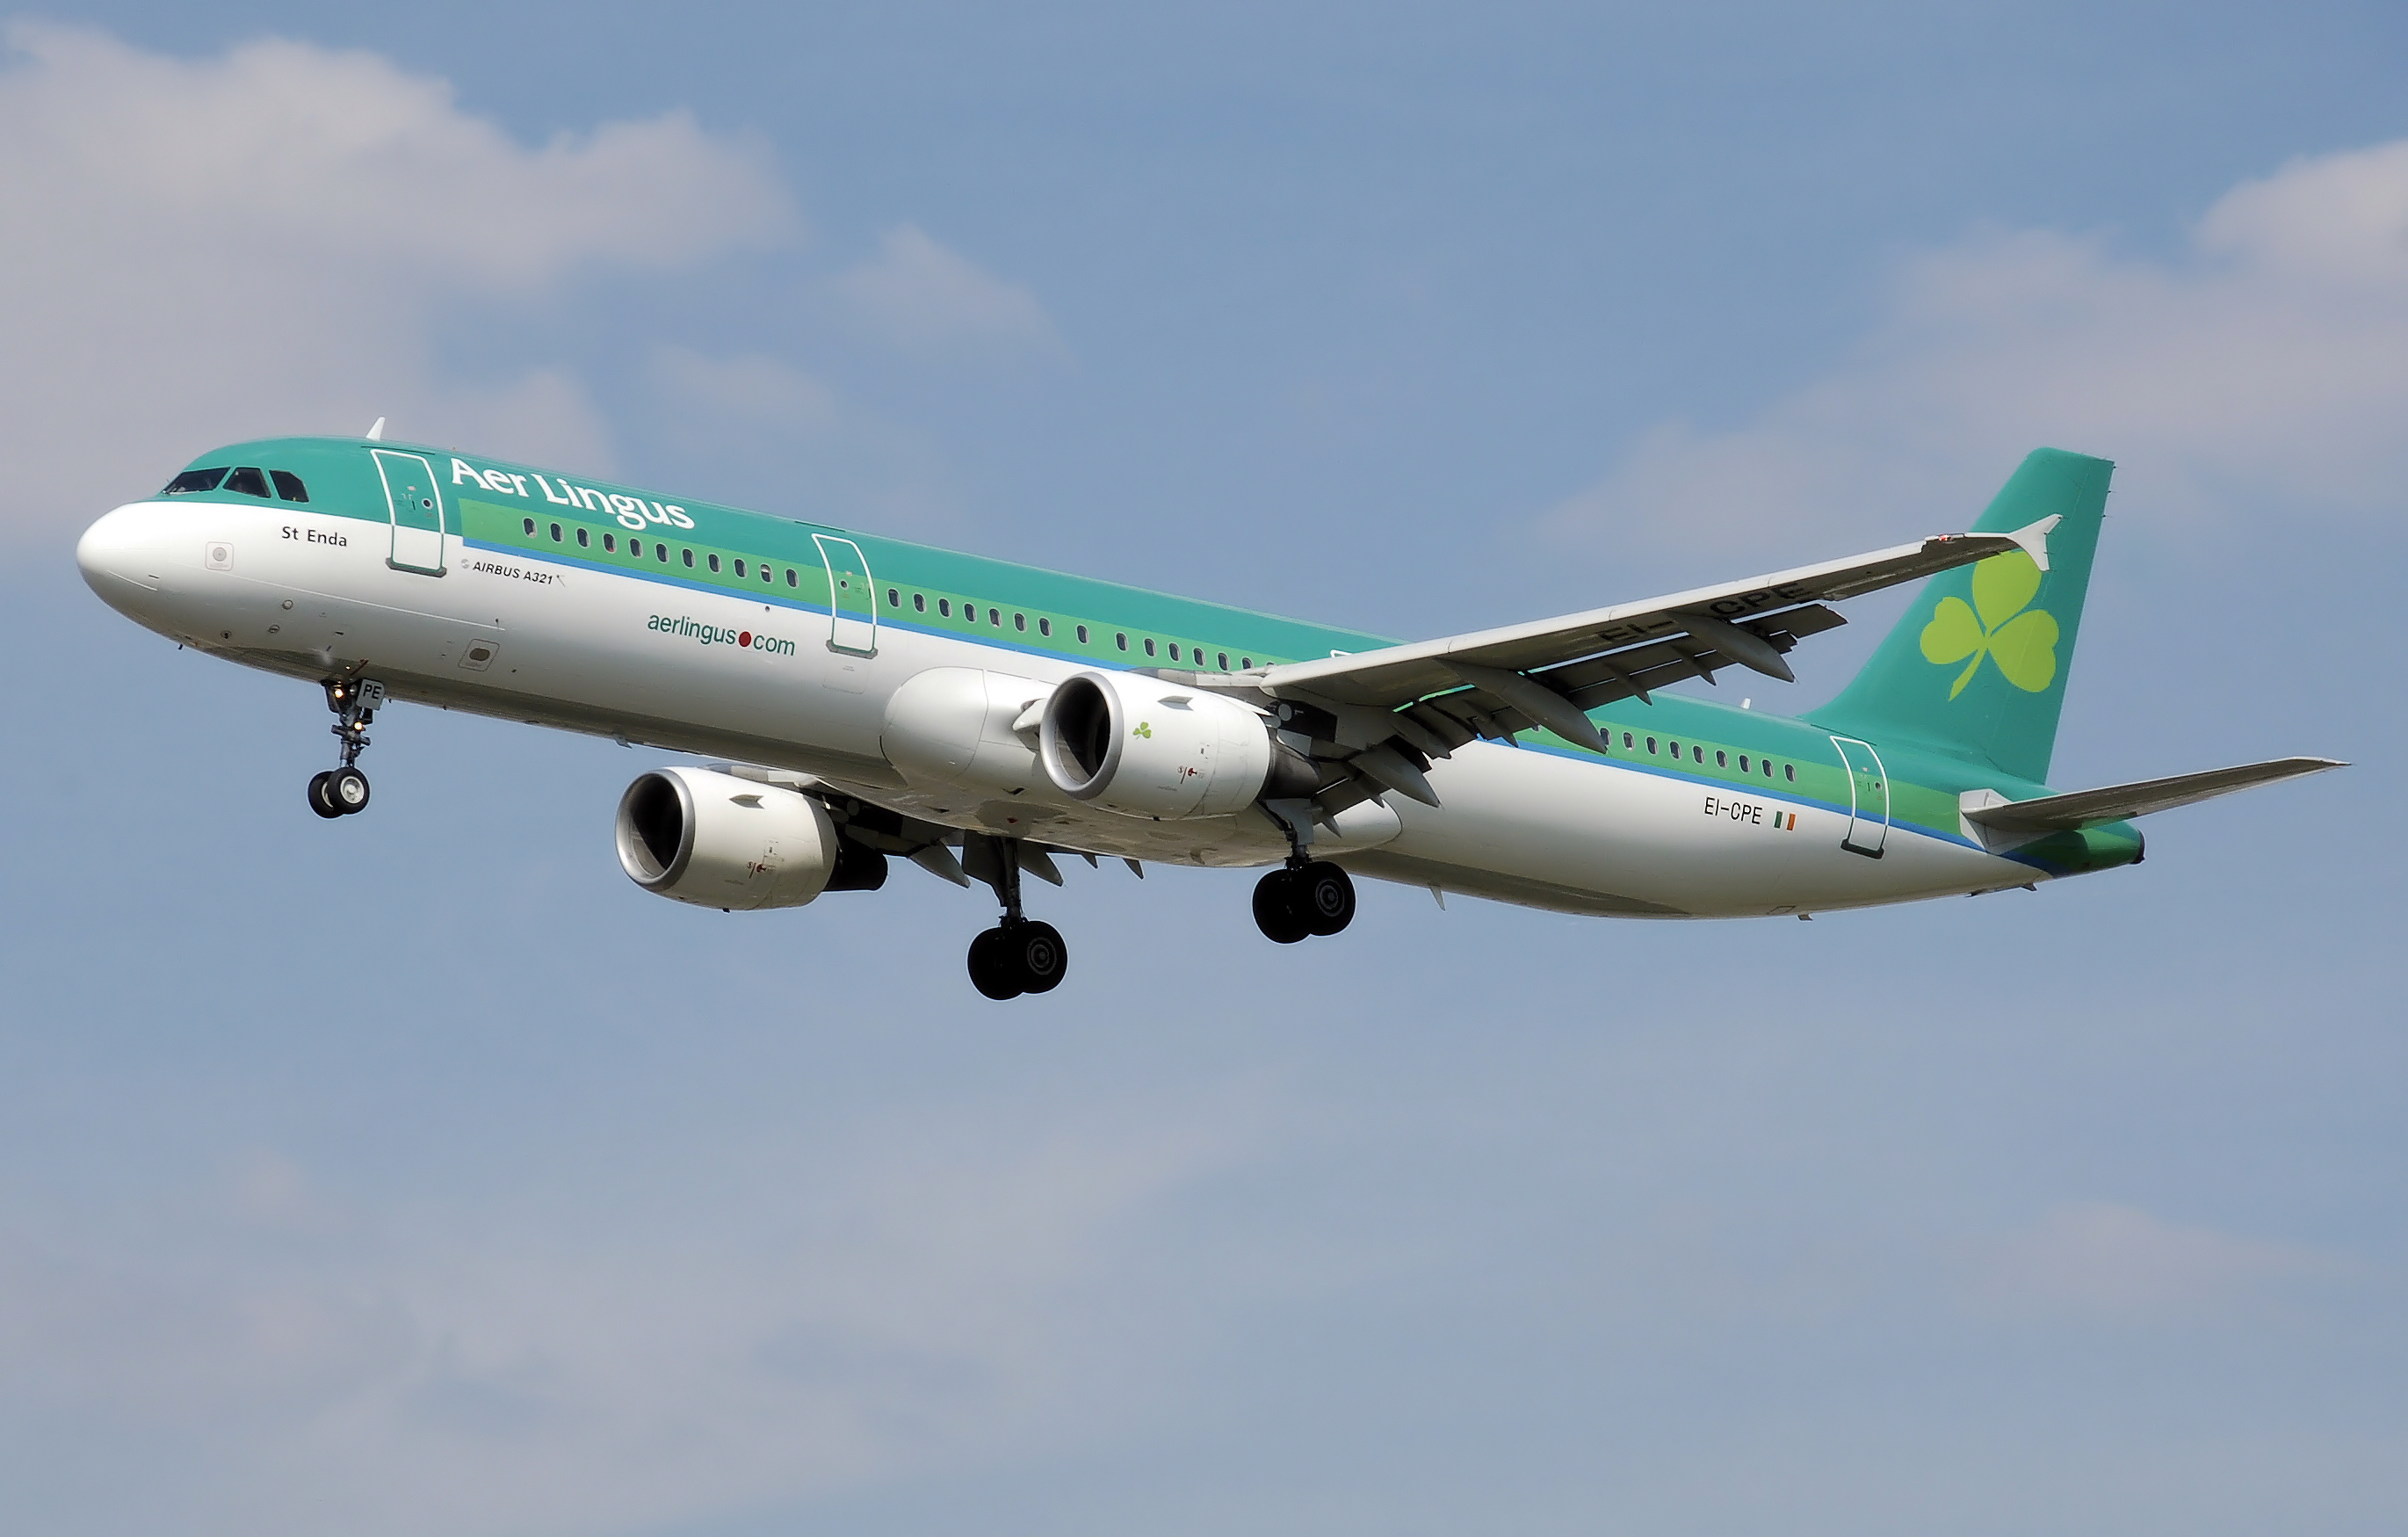 File:Aerlingus.a321-200.ei-cpe.arp.jpg - Wikimedia Commons